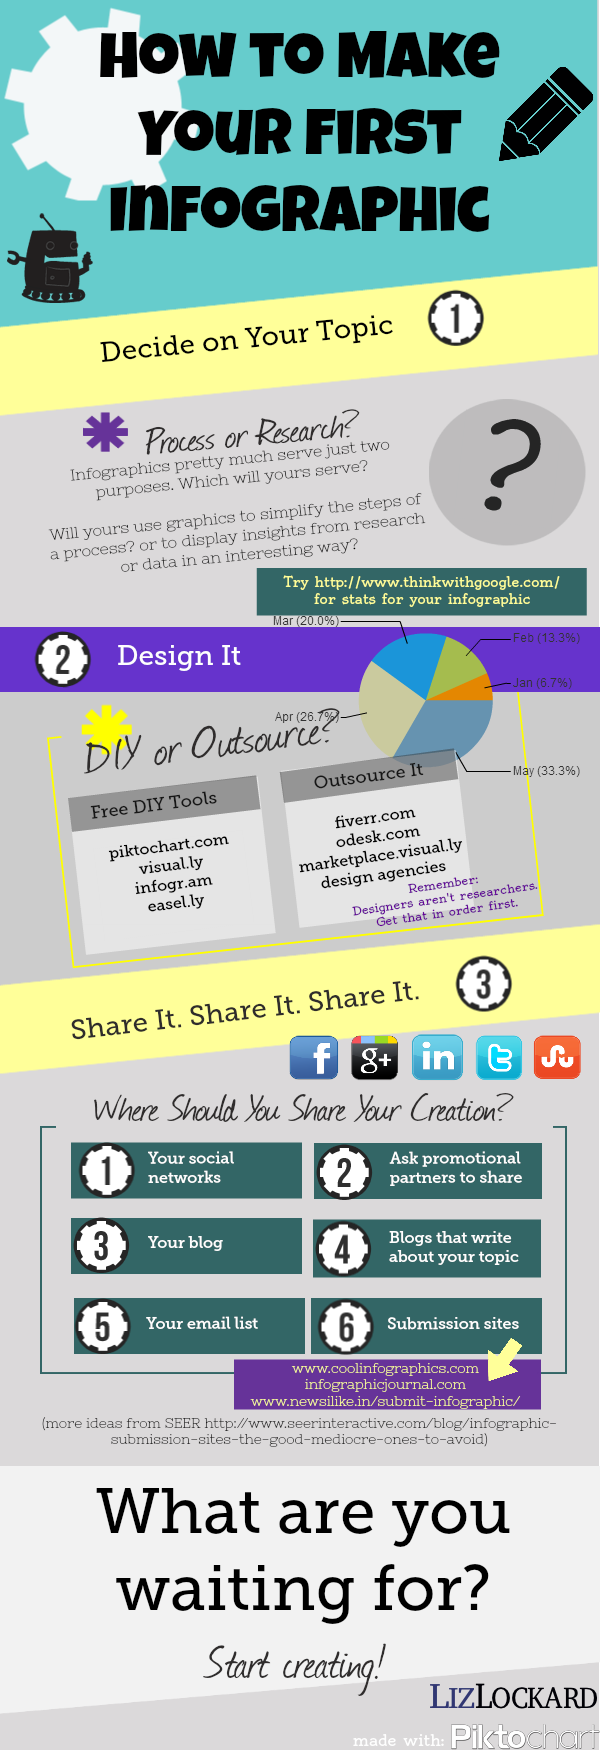 Pin by Liz Lockard on SEO Tips | Infographic, How to ...